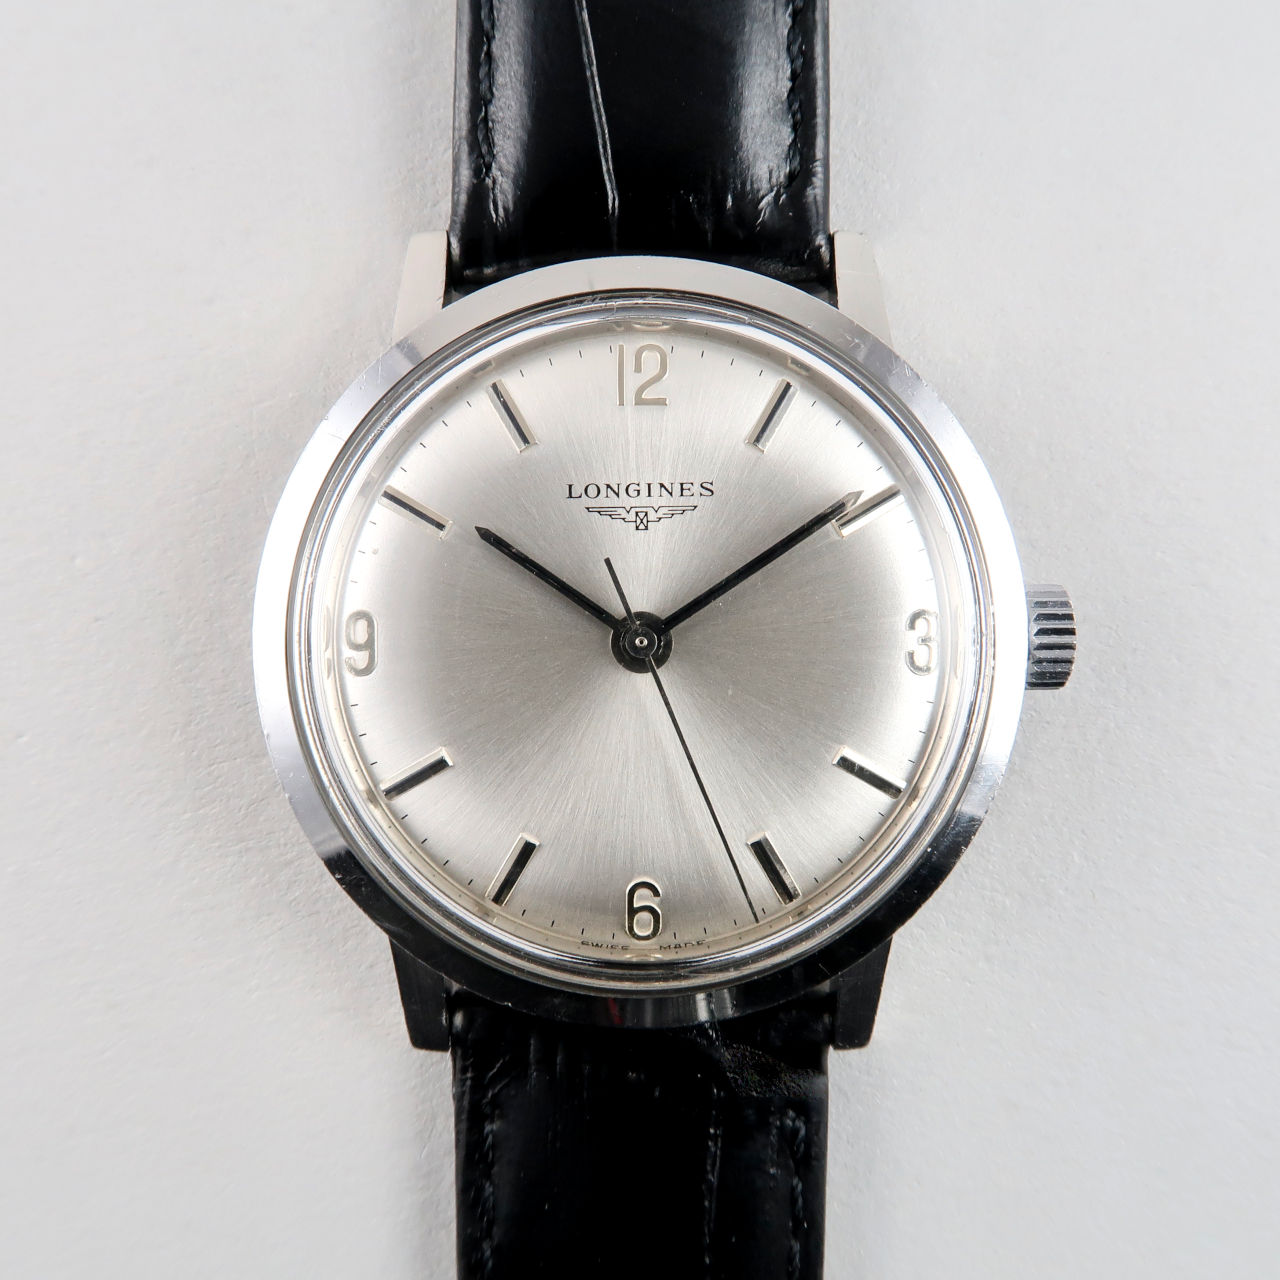 Longines Ref. 8319 circa 1970 | steel manual vintage wristwatch